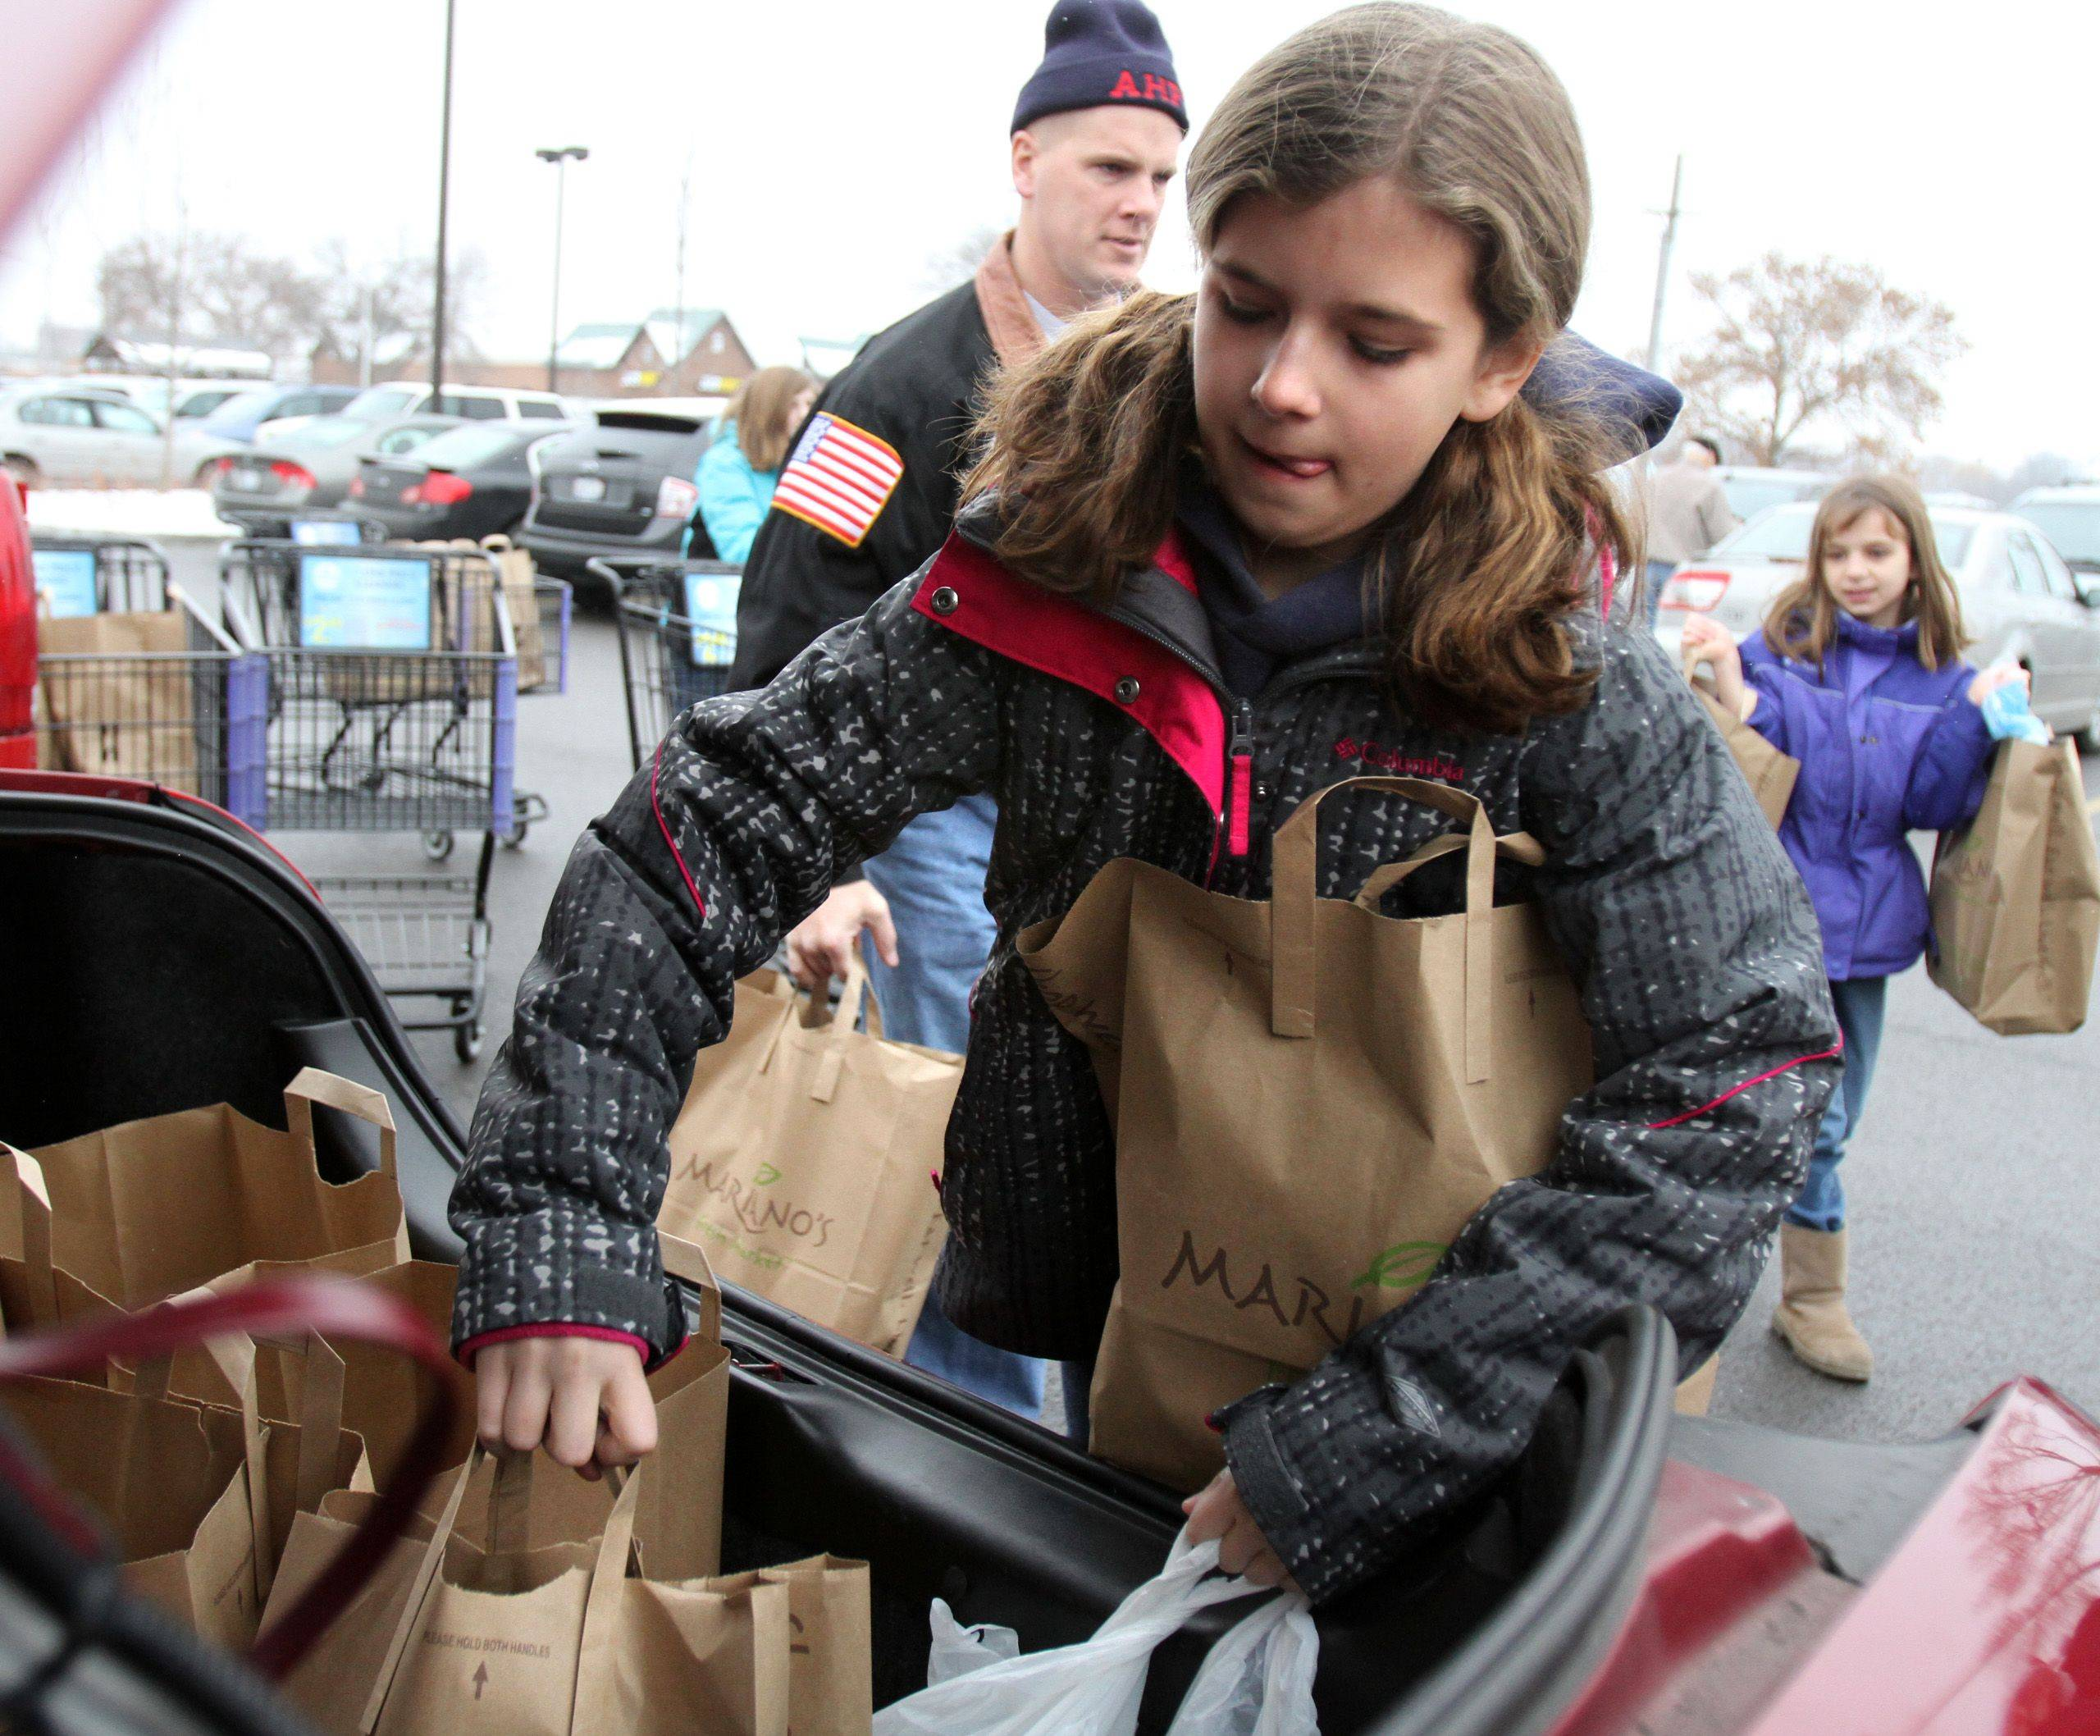 Katrina Kuhn, 11, of Arlington Heights, helps the Arlington Heights Fire Department, members of local 3105, and fire department administration load meals to be delivered Christmas Eve.